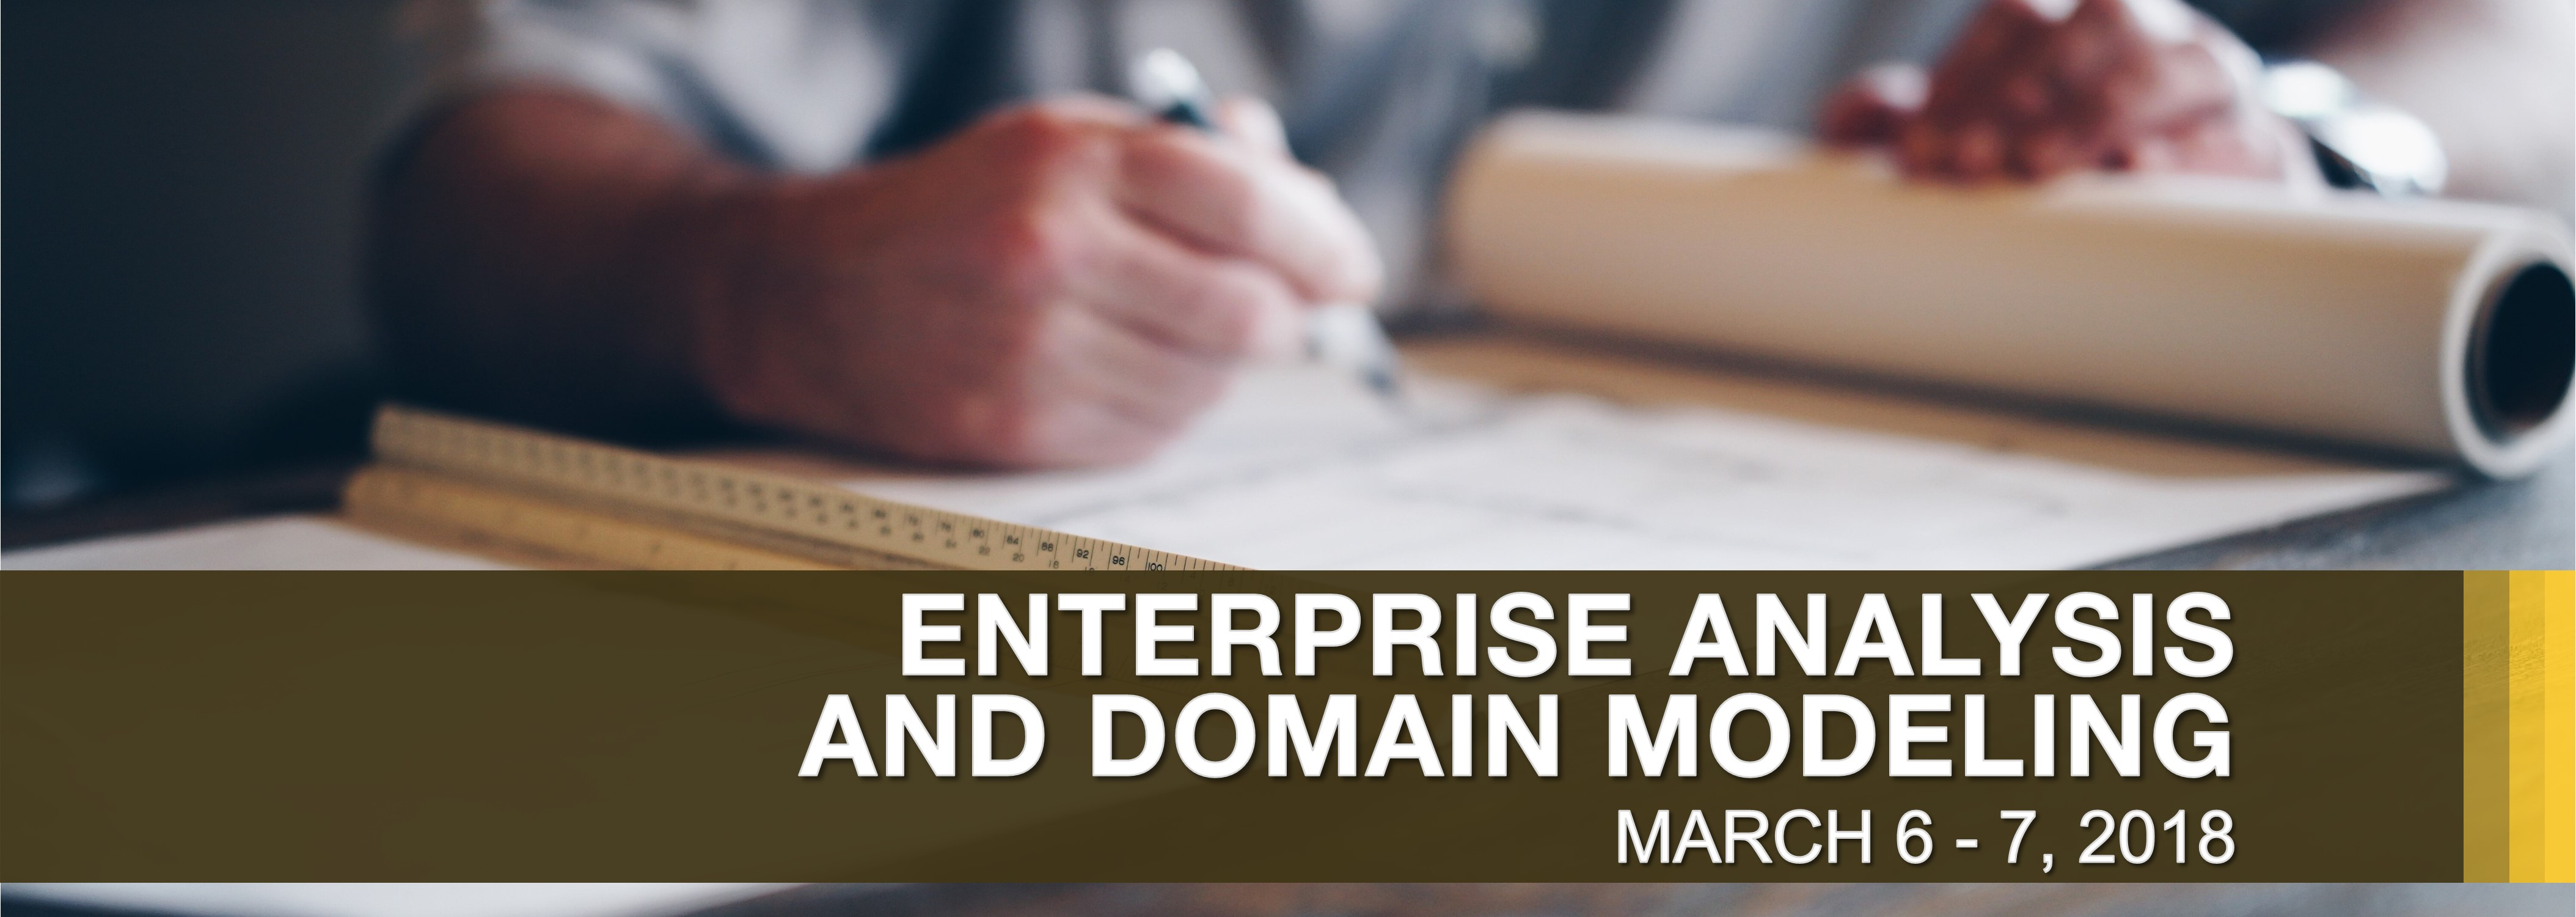 Enterprise Analysis and Domain Modeling on March 6-7, 2018